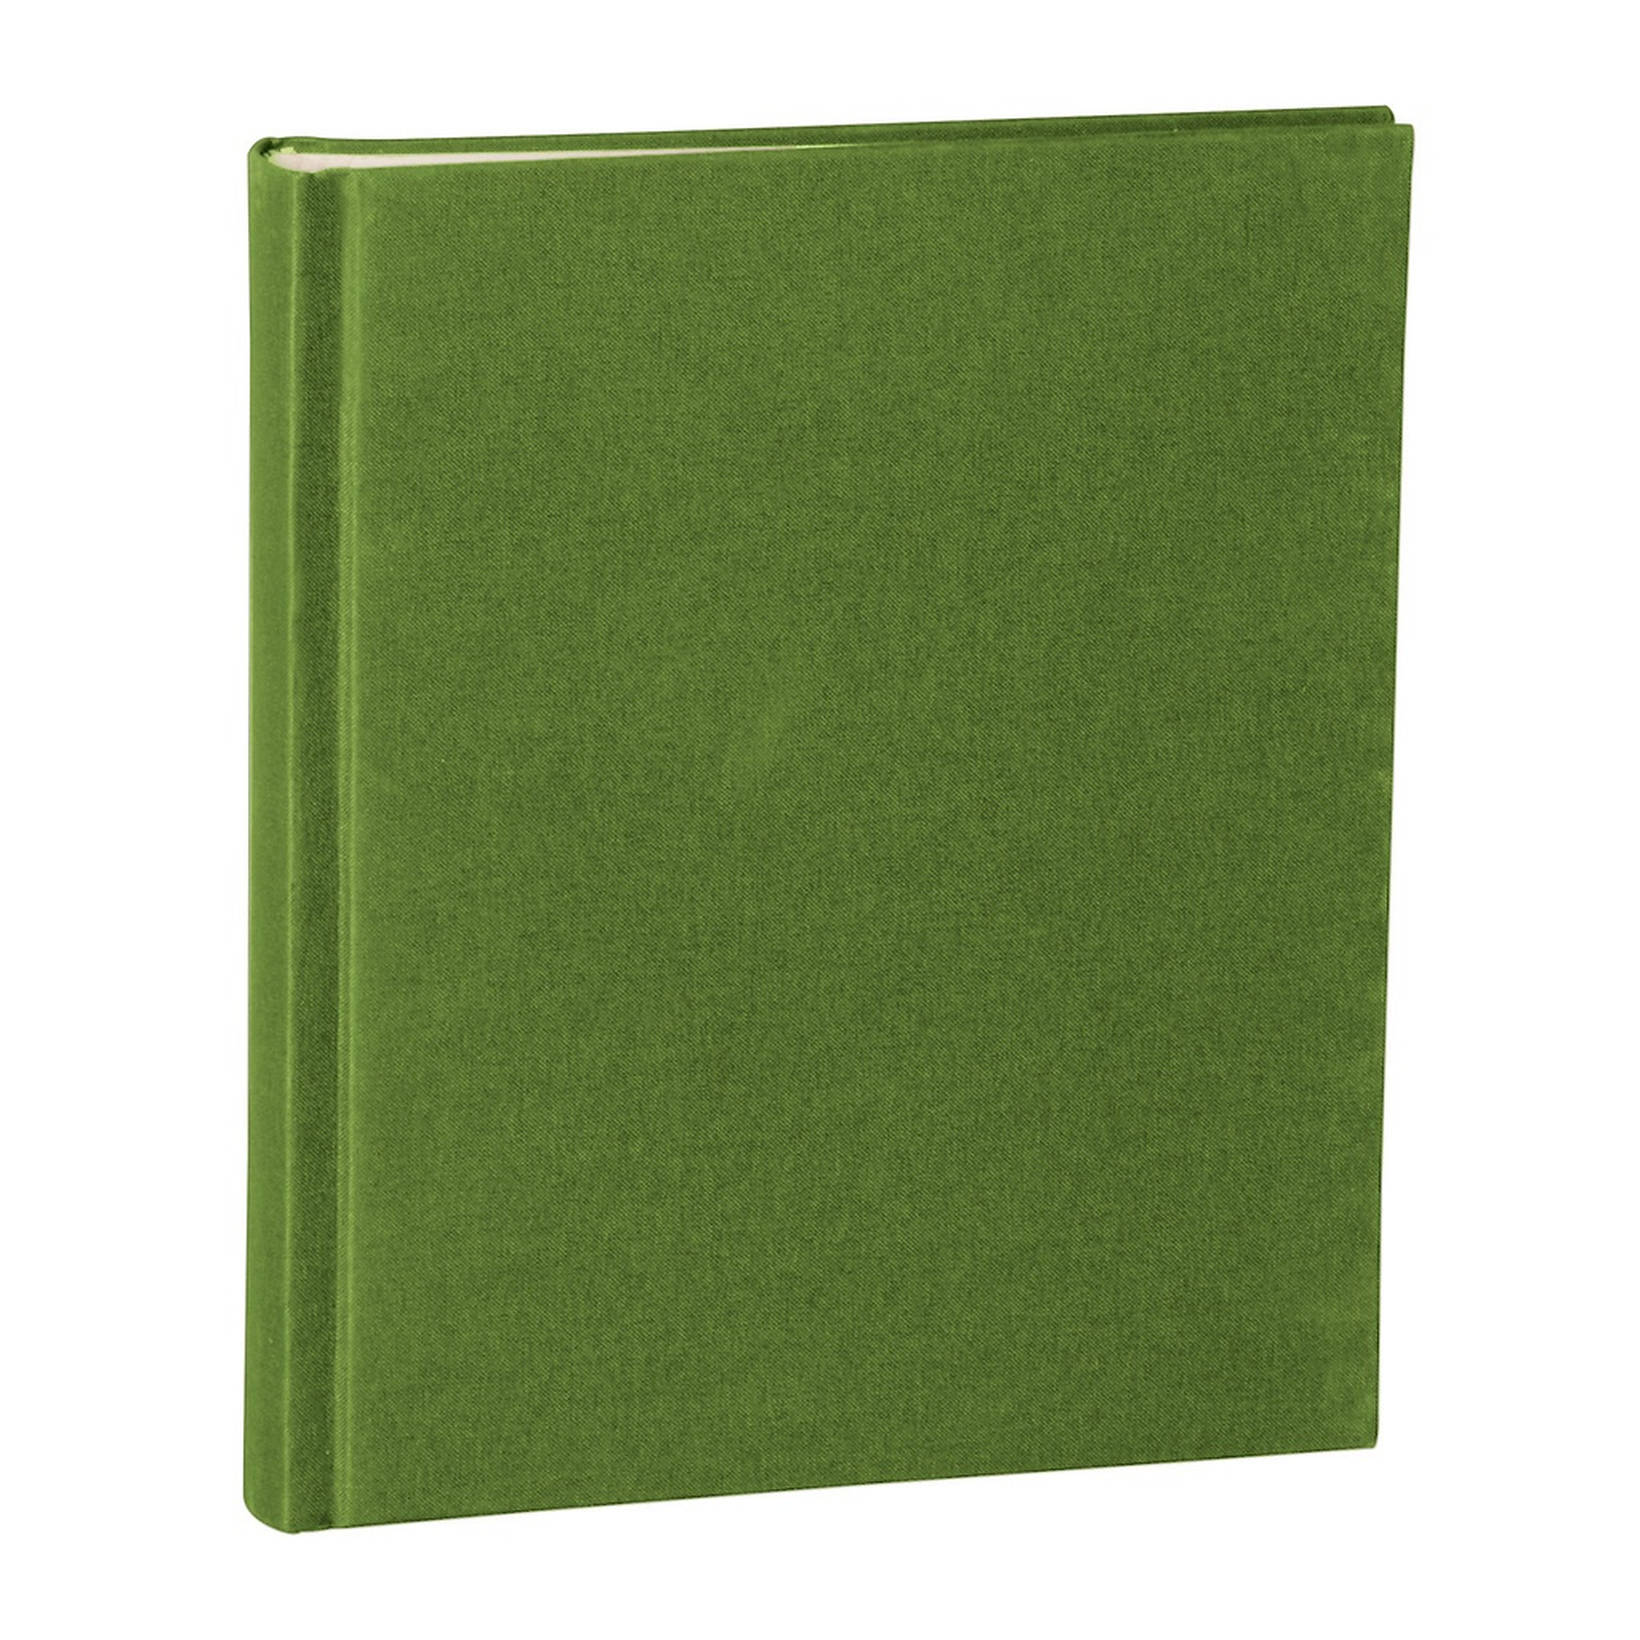 Classic Photo Album Medium With Linen Binding